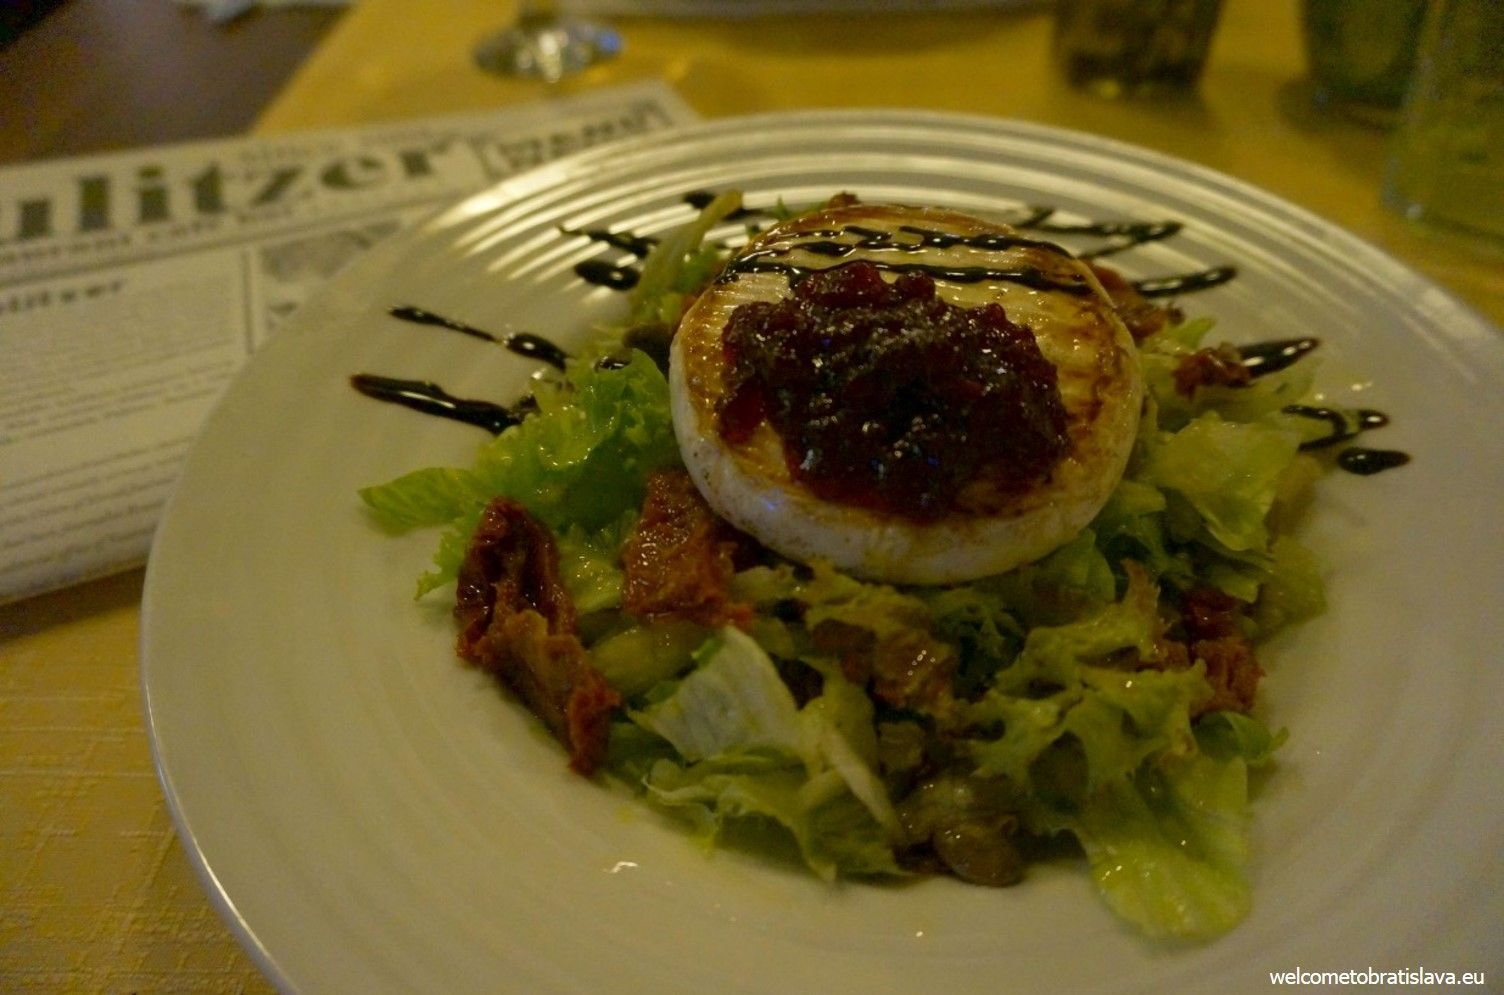 """Probably the most delicious meal I have had in Pulitzer so far is the """"Pulitzer salad"""" which is served with grilled noble white mold hermelin cheese, green salad, sun-dried tomatoes, capers and cranberries."""